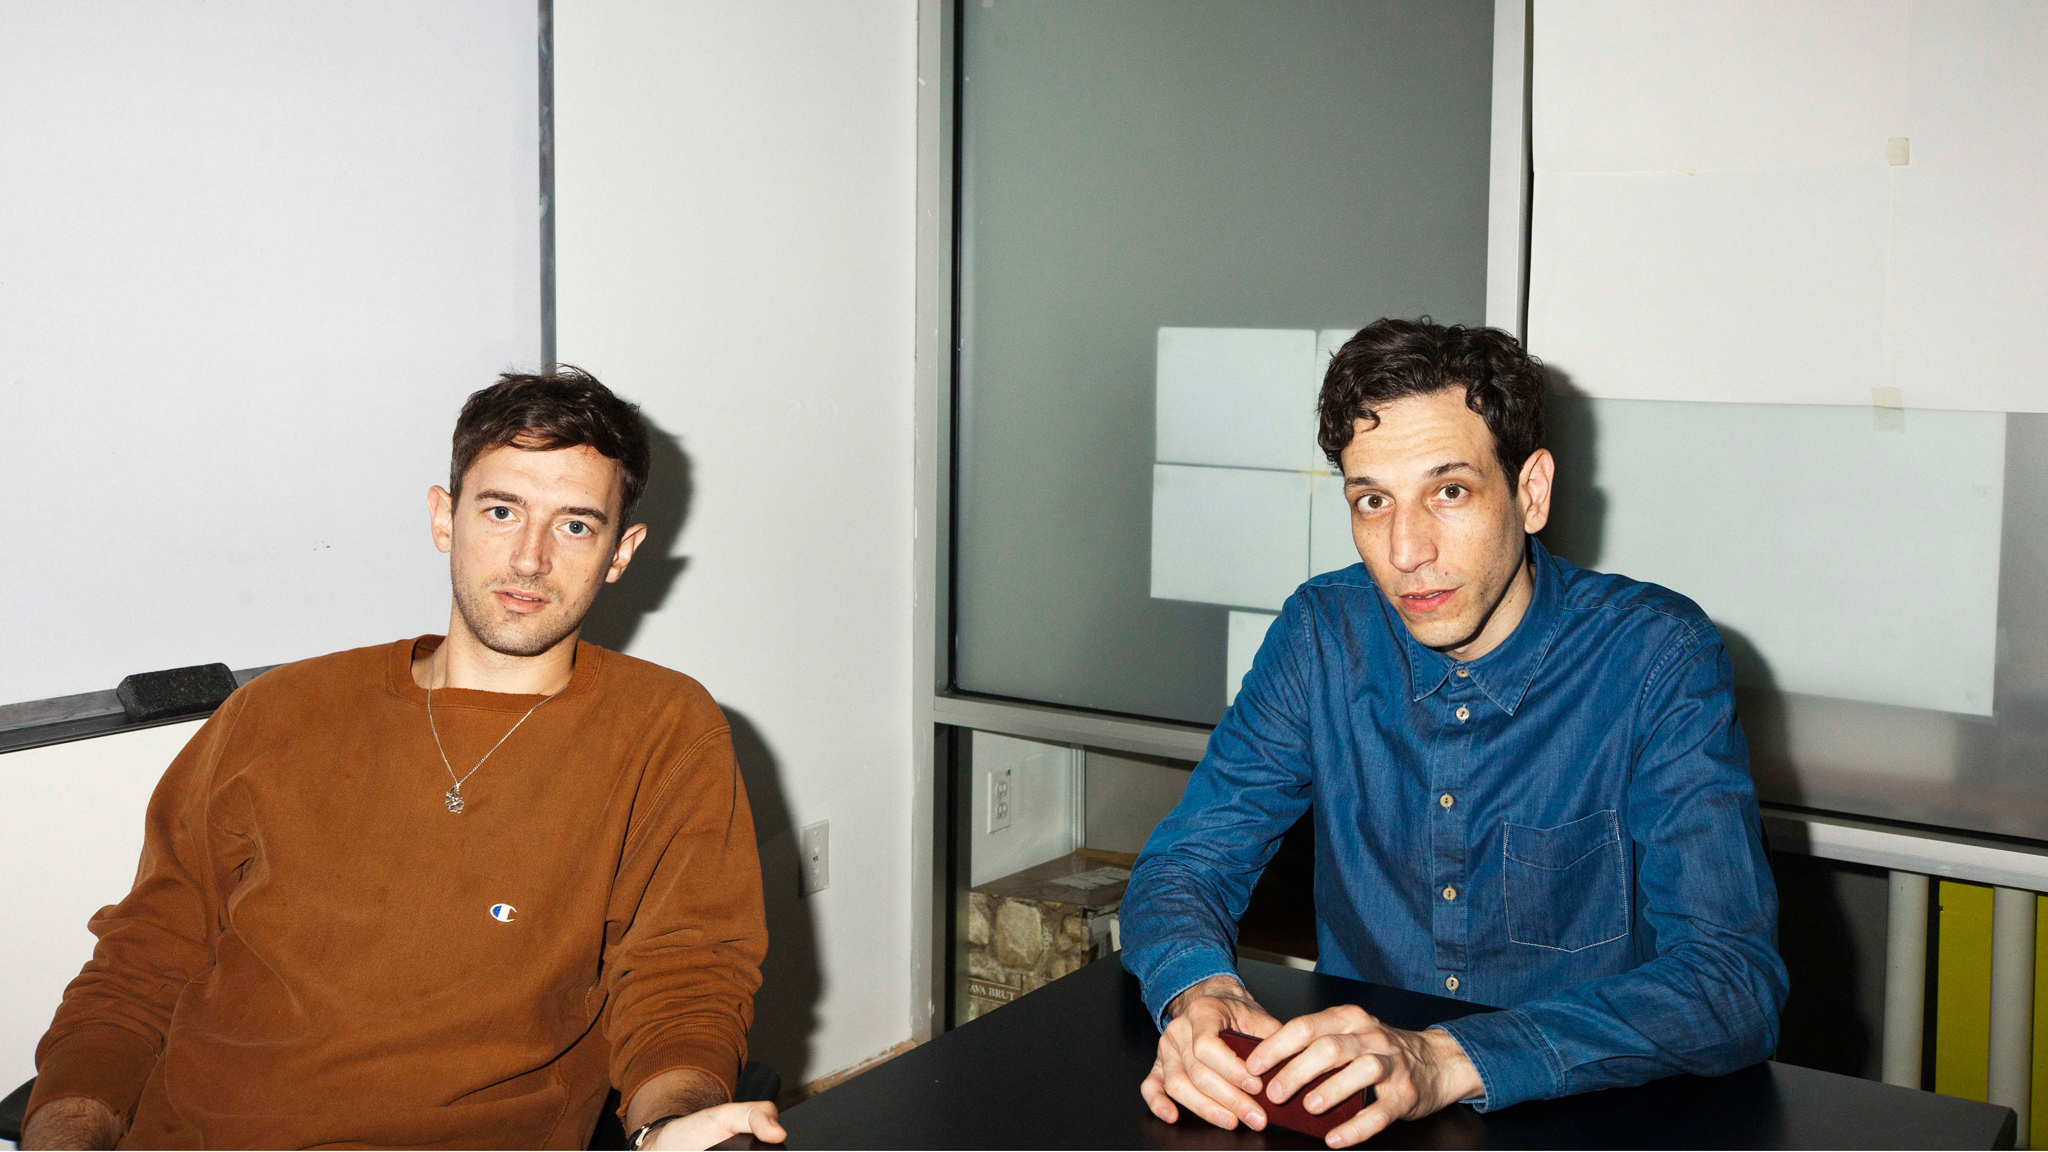 Tanlines performs at X Games Los Angeles on Fri., Aug. 2, at Club Nokia.